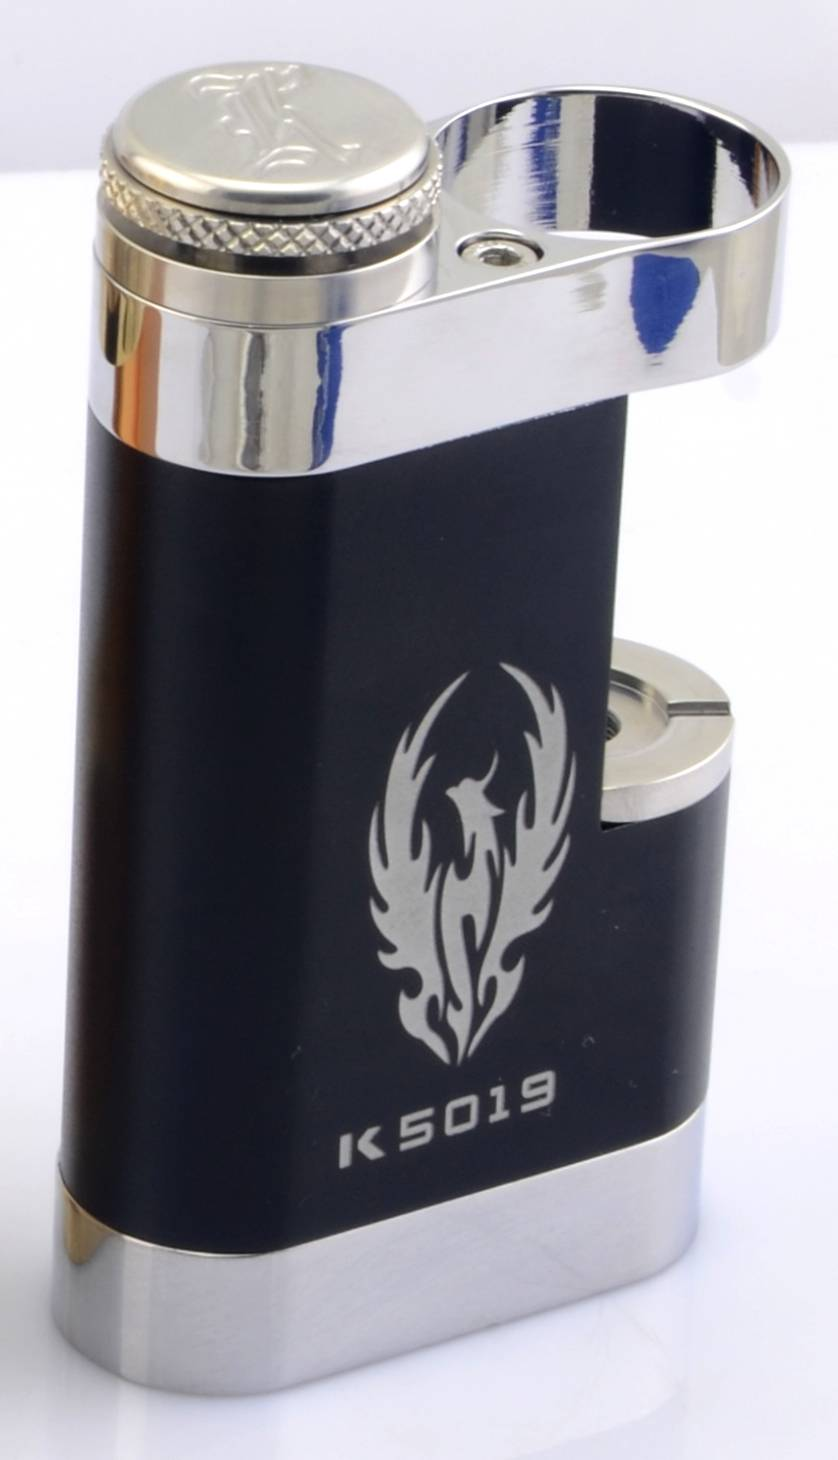 2015 Hot Sale Kato Box Mod Electronic Cigarette